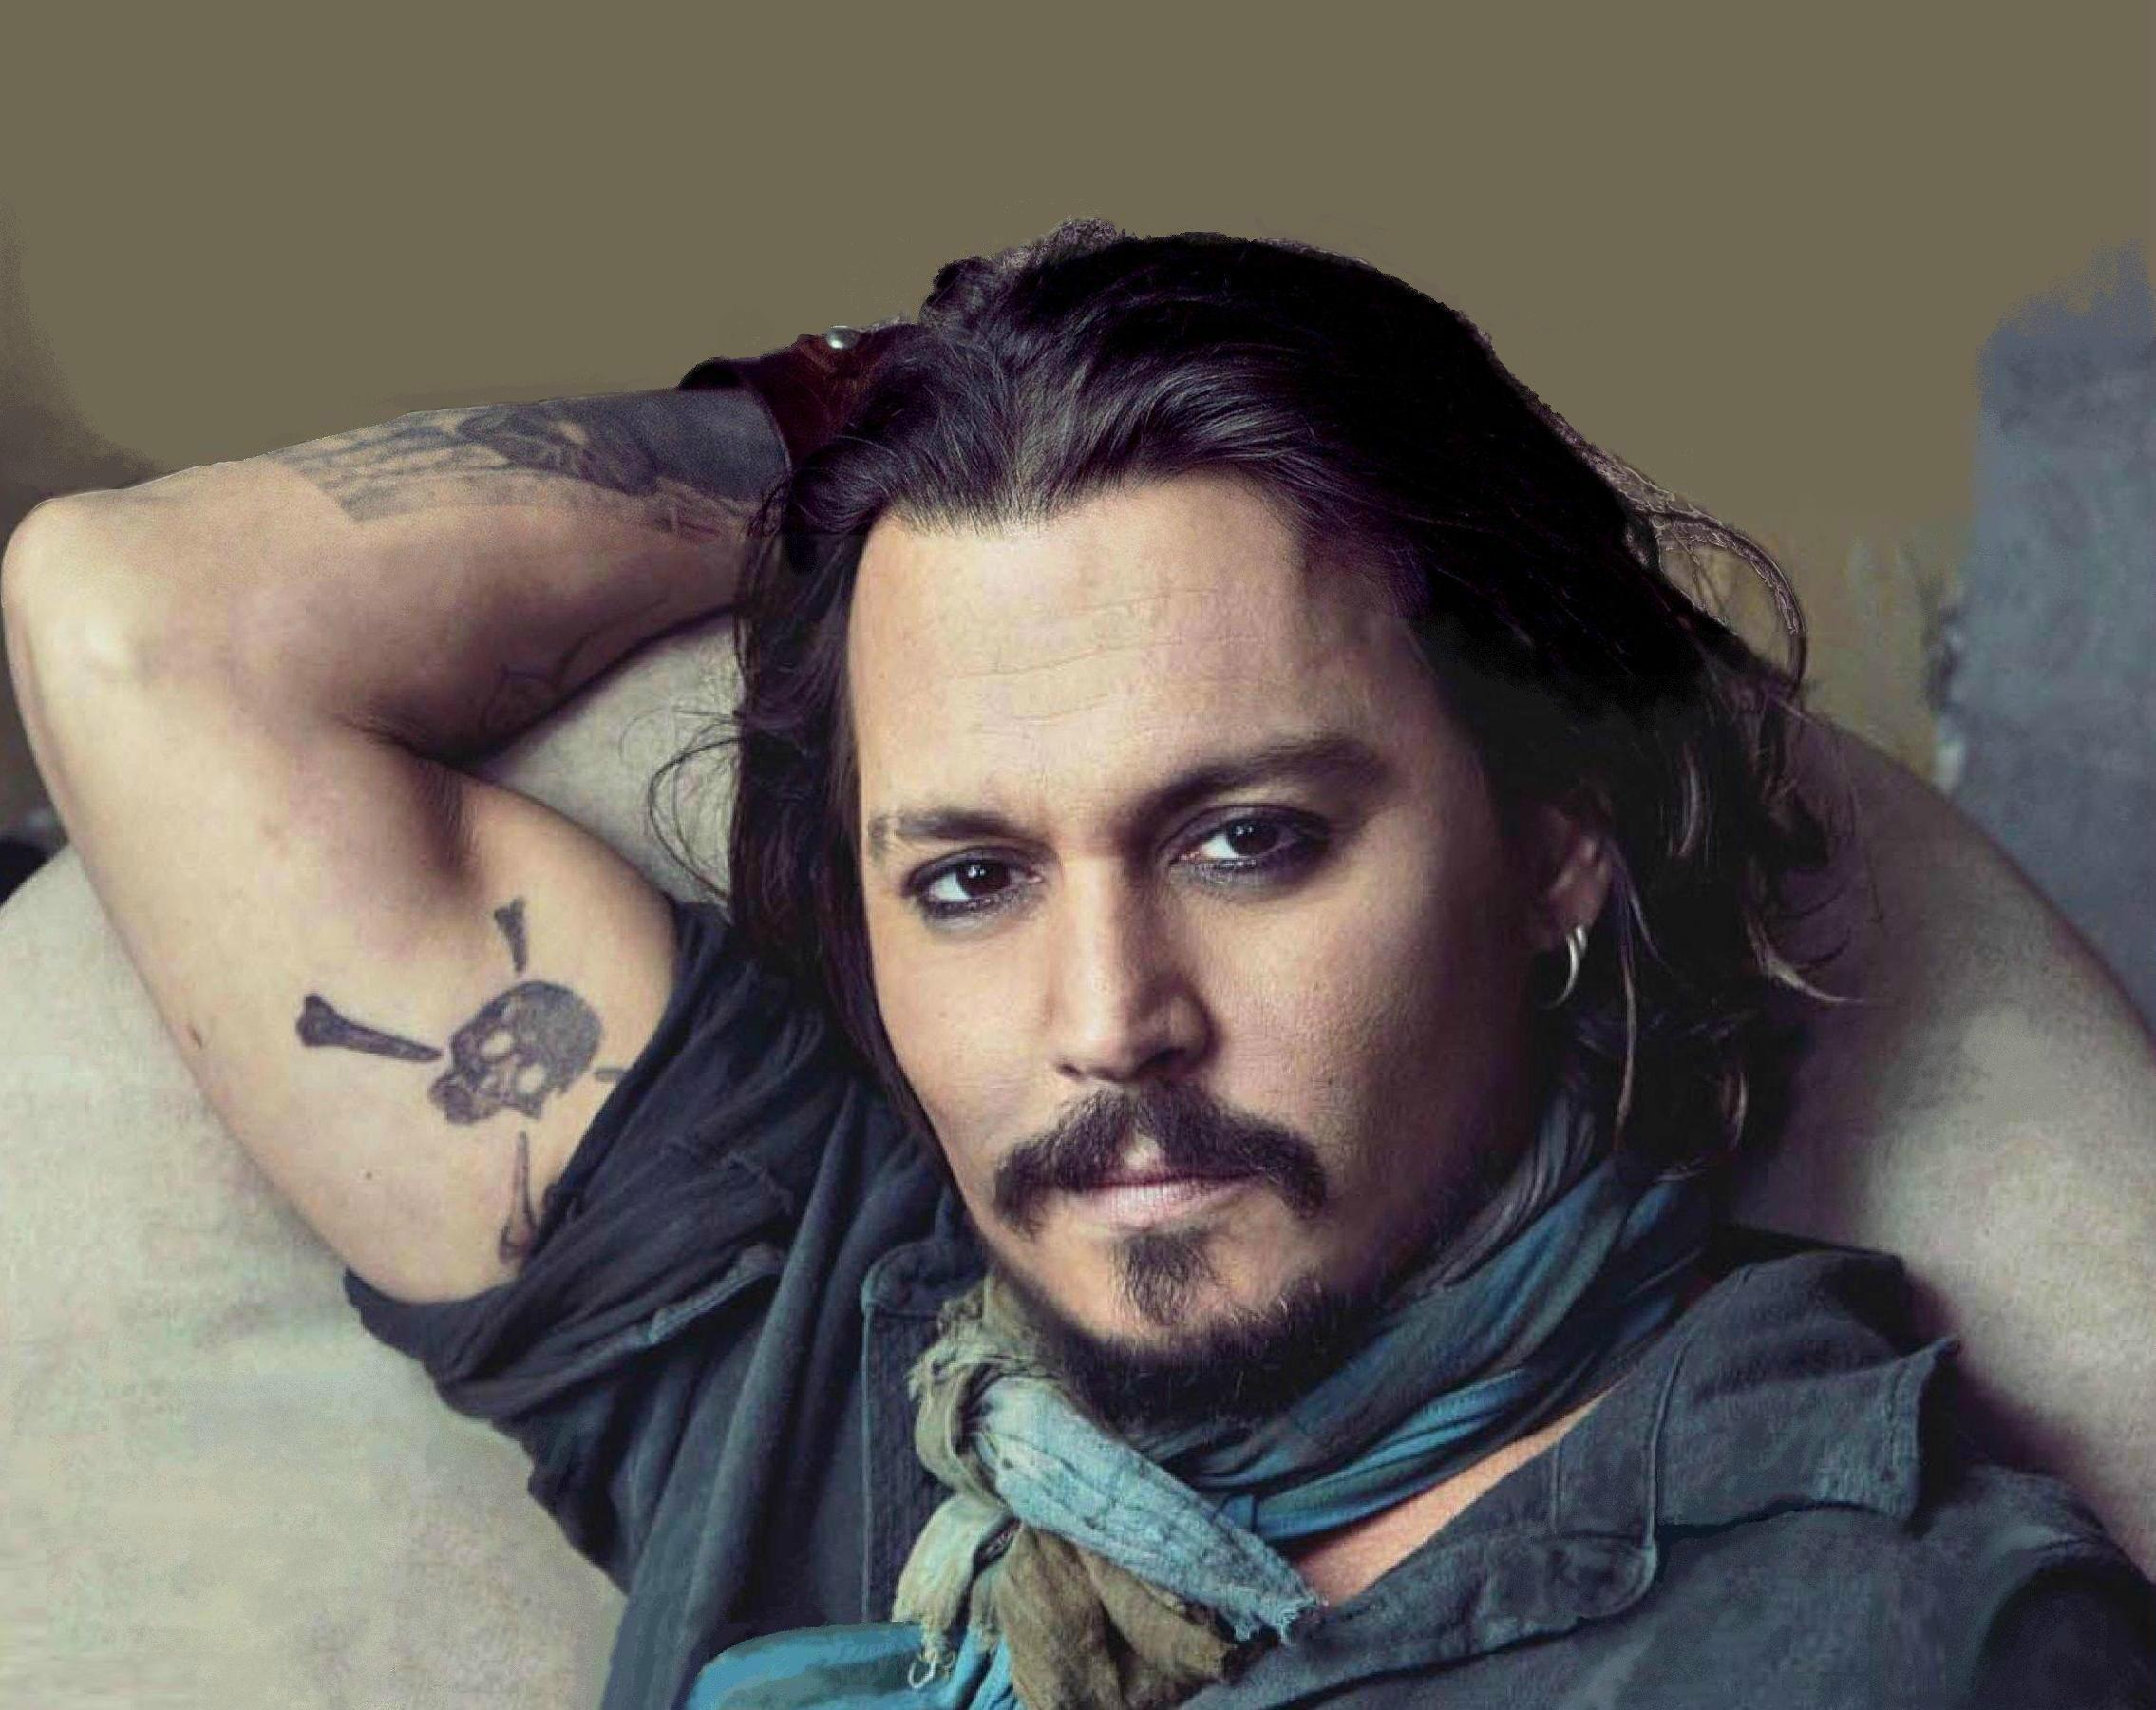 Overview of the roles of Johnny Depp